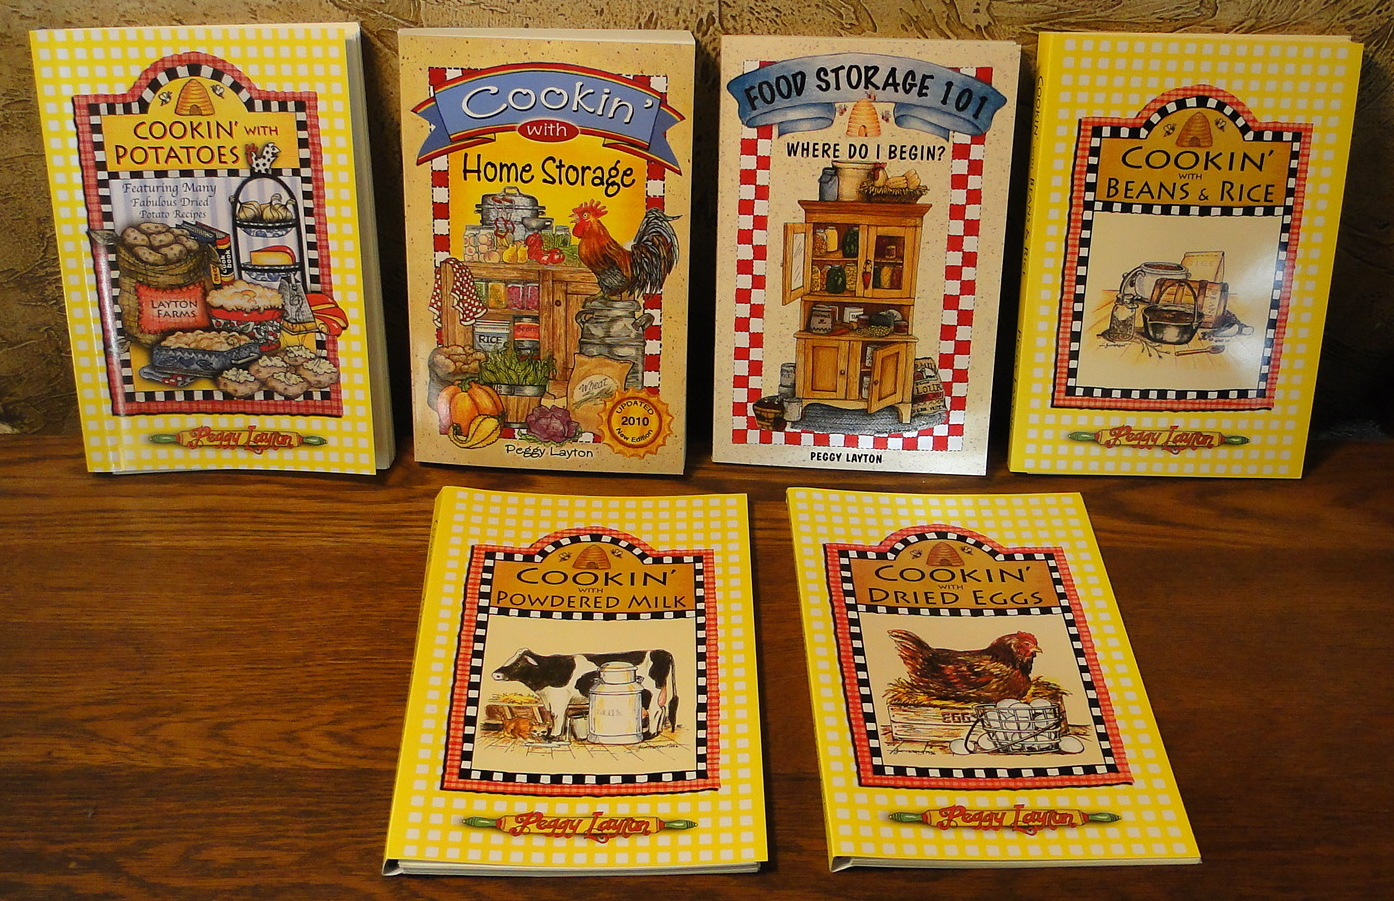 6 Book Special: All books written by Peggy Layton